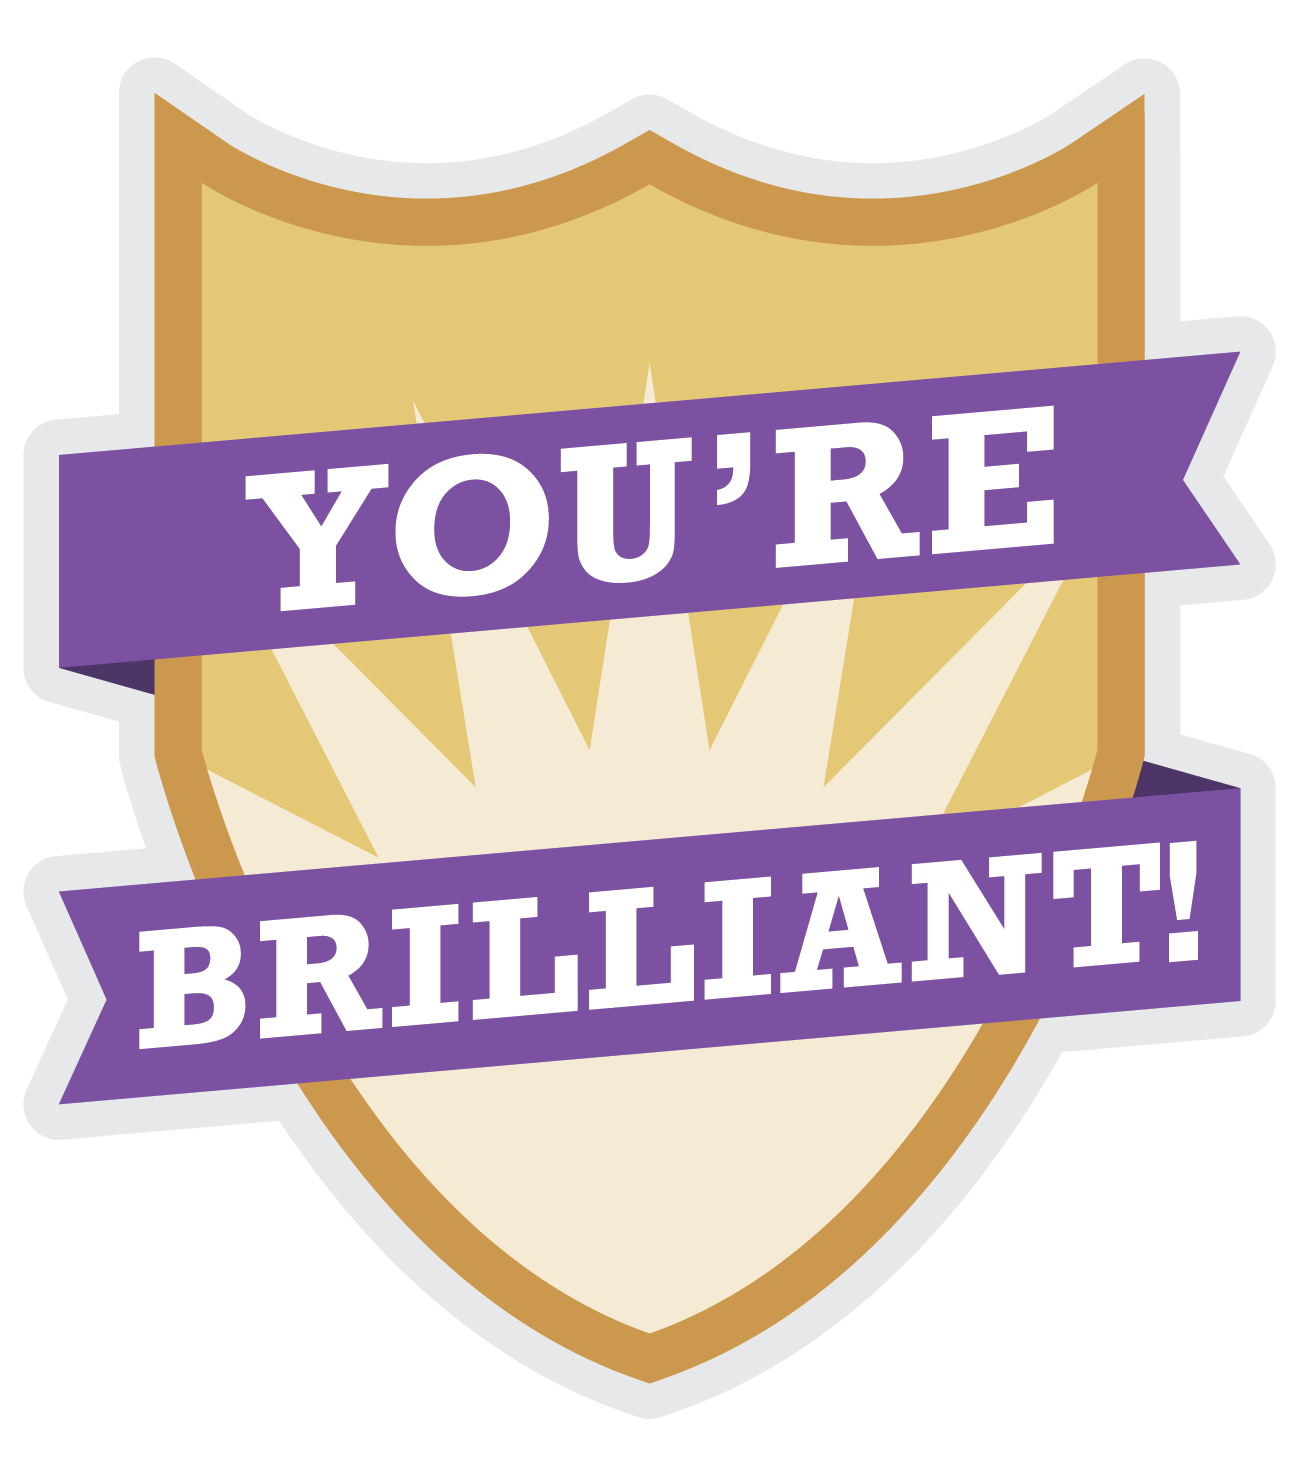 You're Brilliant Award logo